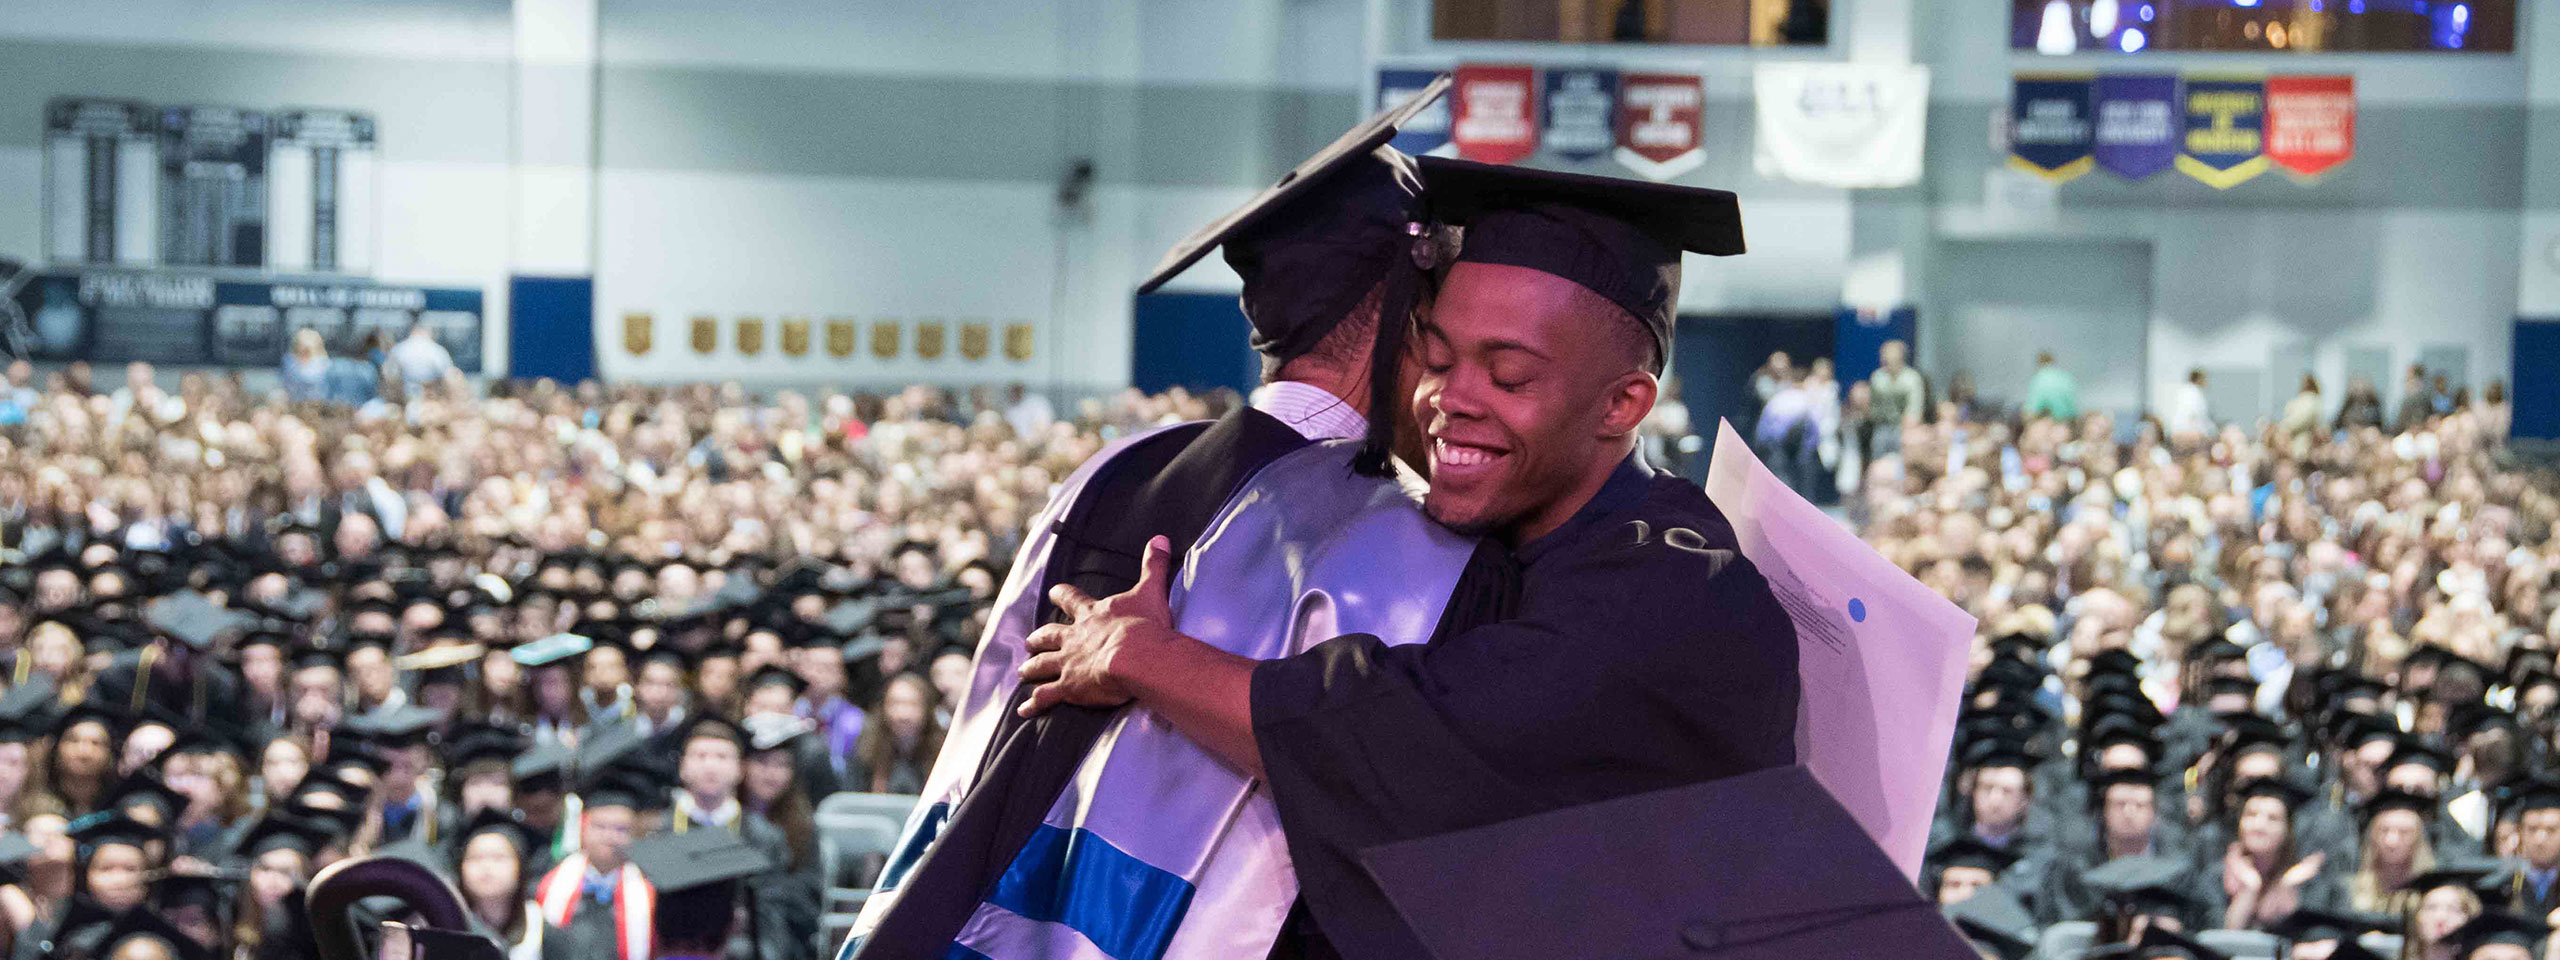 Graduating student hugging at commencement